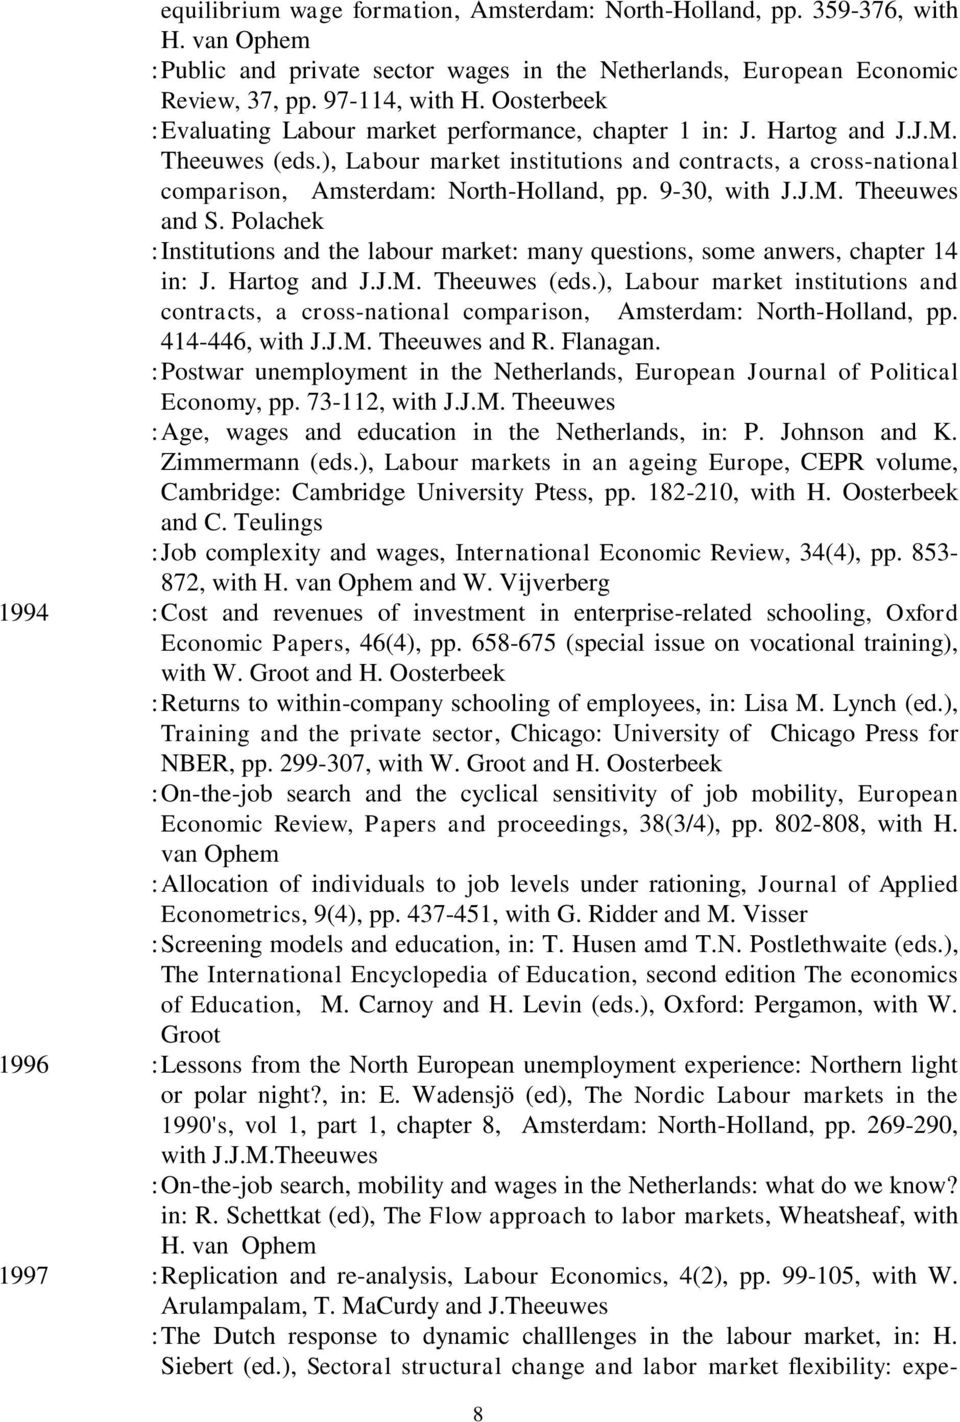 ), Labour market institutions and contracts, a cross-national comparison, Amsterdam: North-Holland, pp. 9-30, with J.J.M. Theeuwes and S.